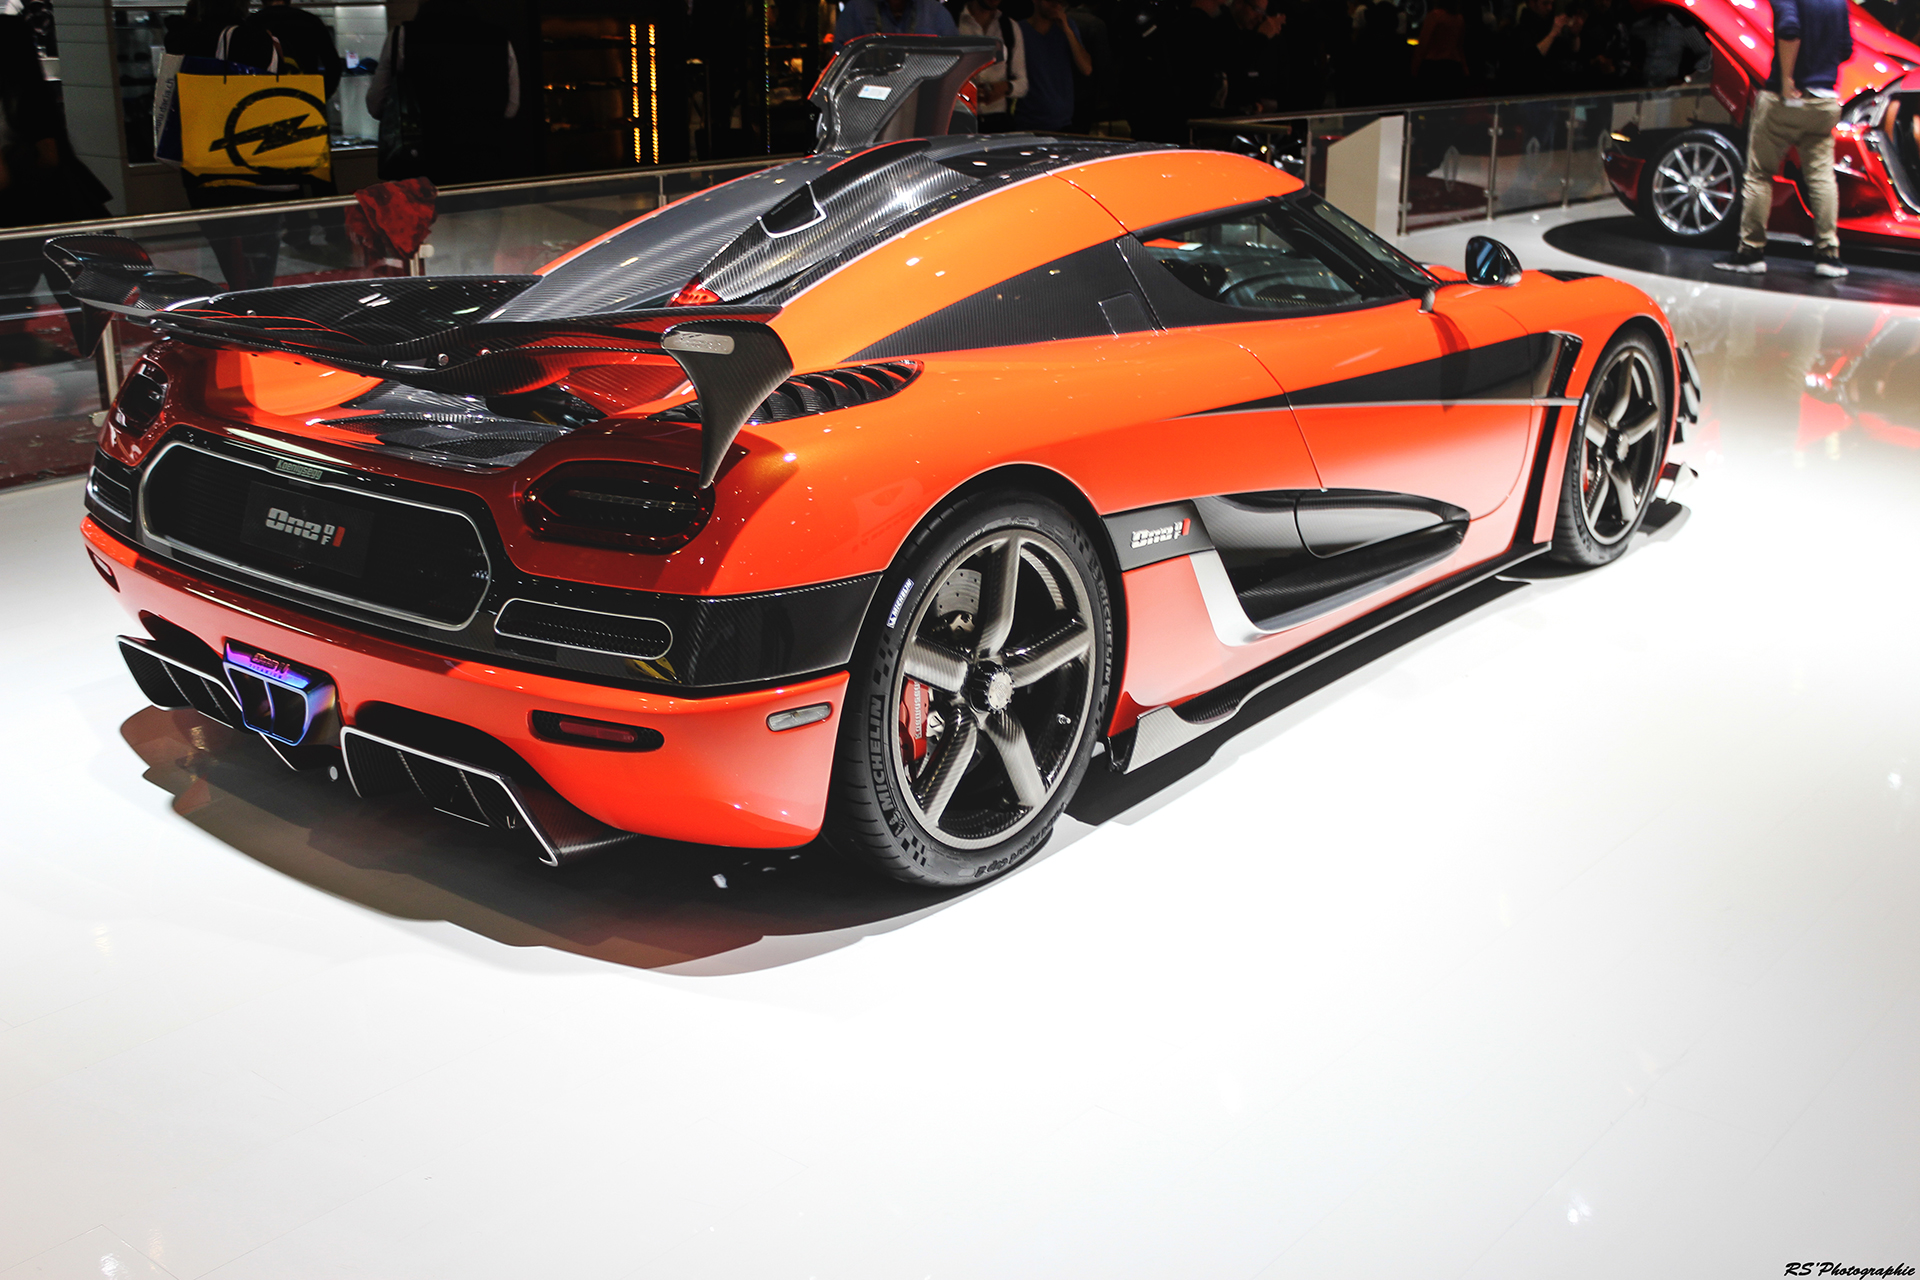 Koenigsegg Agera Final One of 1 - rear side-face - Geneva 2016 - Arnaud Demasier RS Photographie